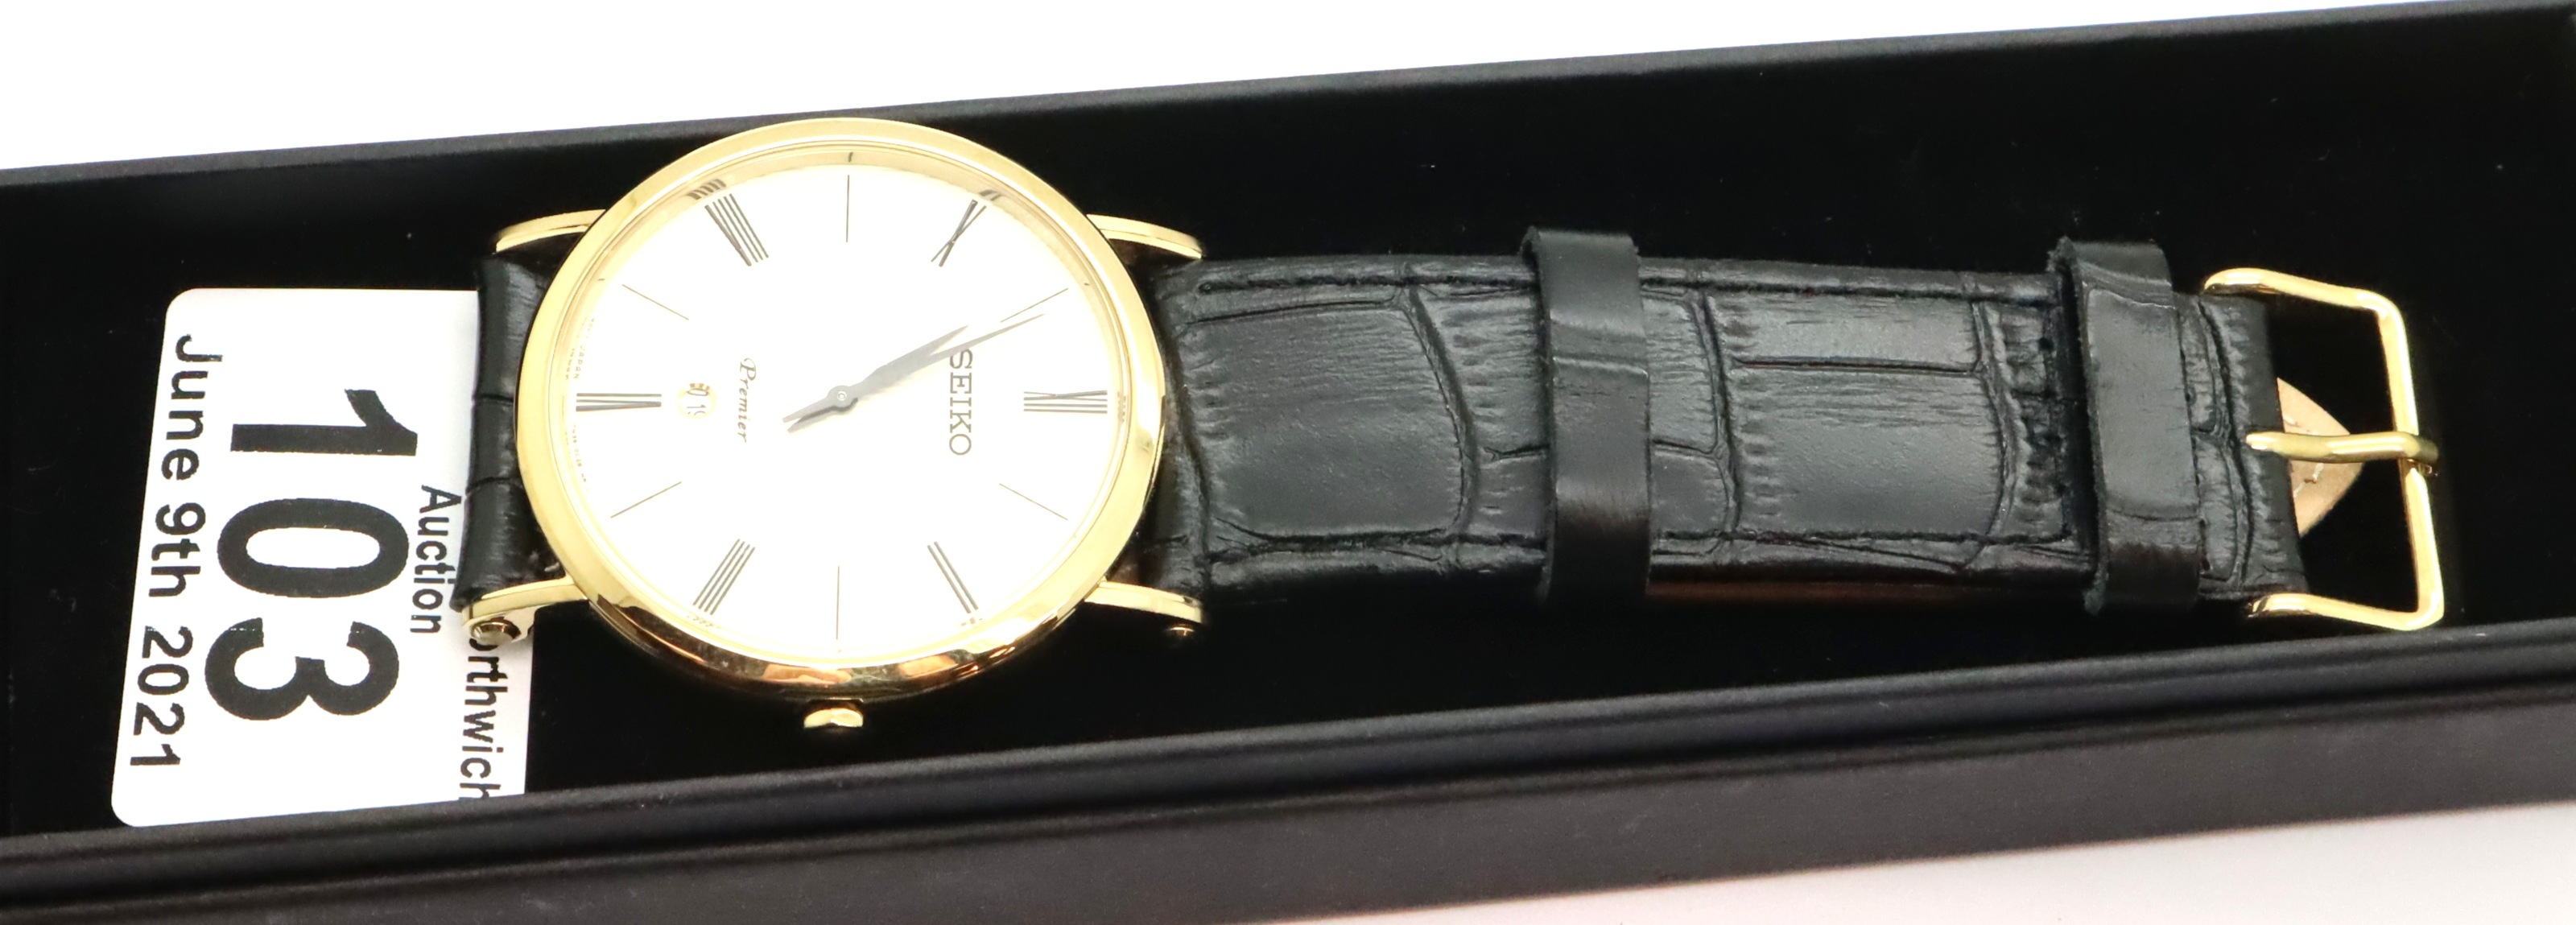 Gents Seiko calendar wristwatch, D: 4 cm. P&P Group 1 (£14+VAT for the first lot and £1+VAT for - Image 3 of 3